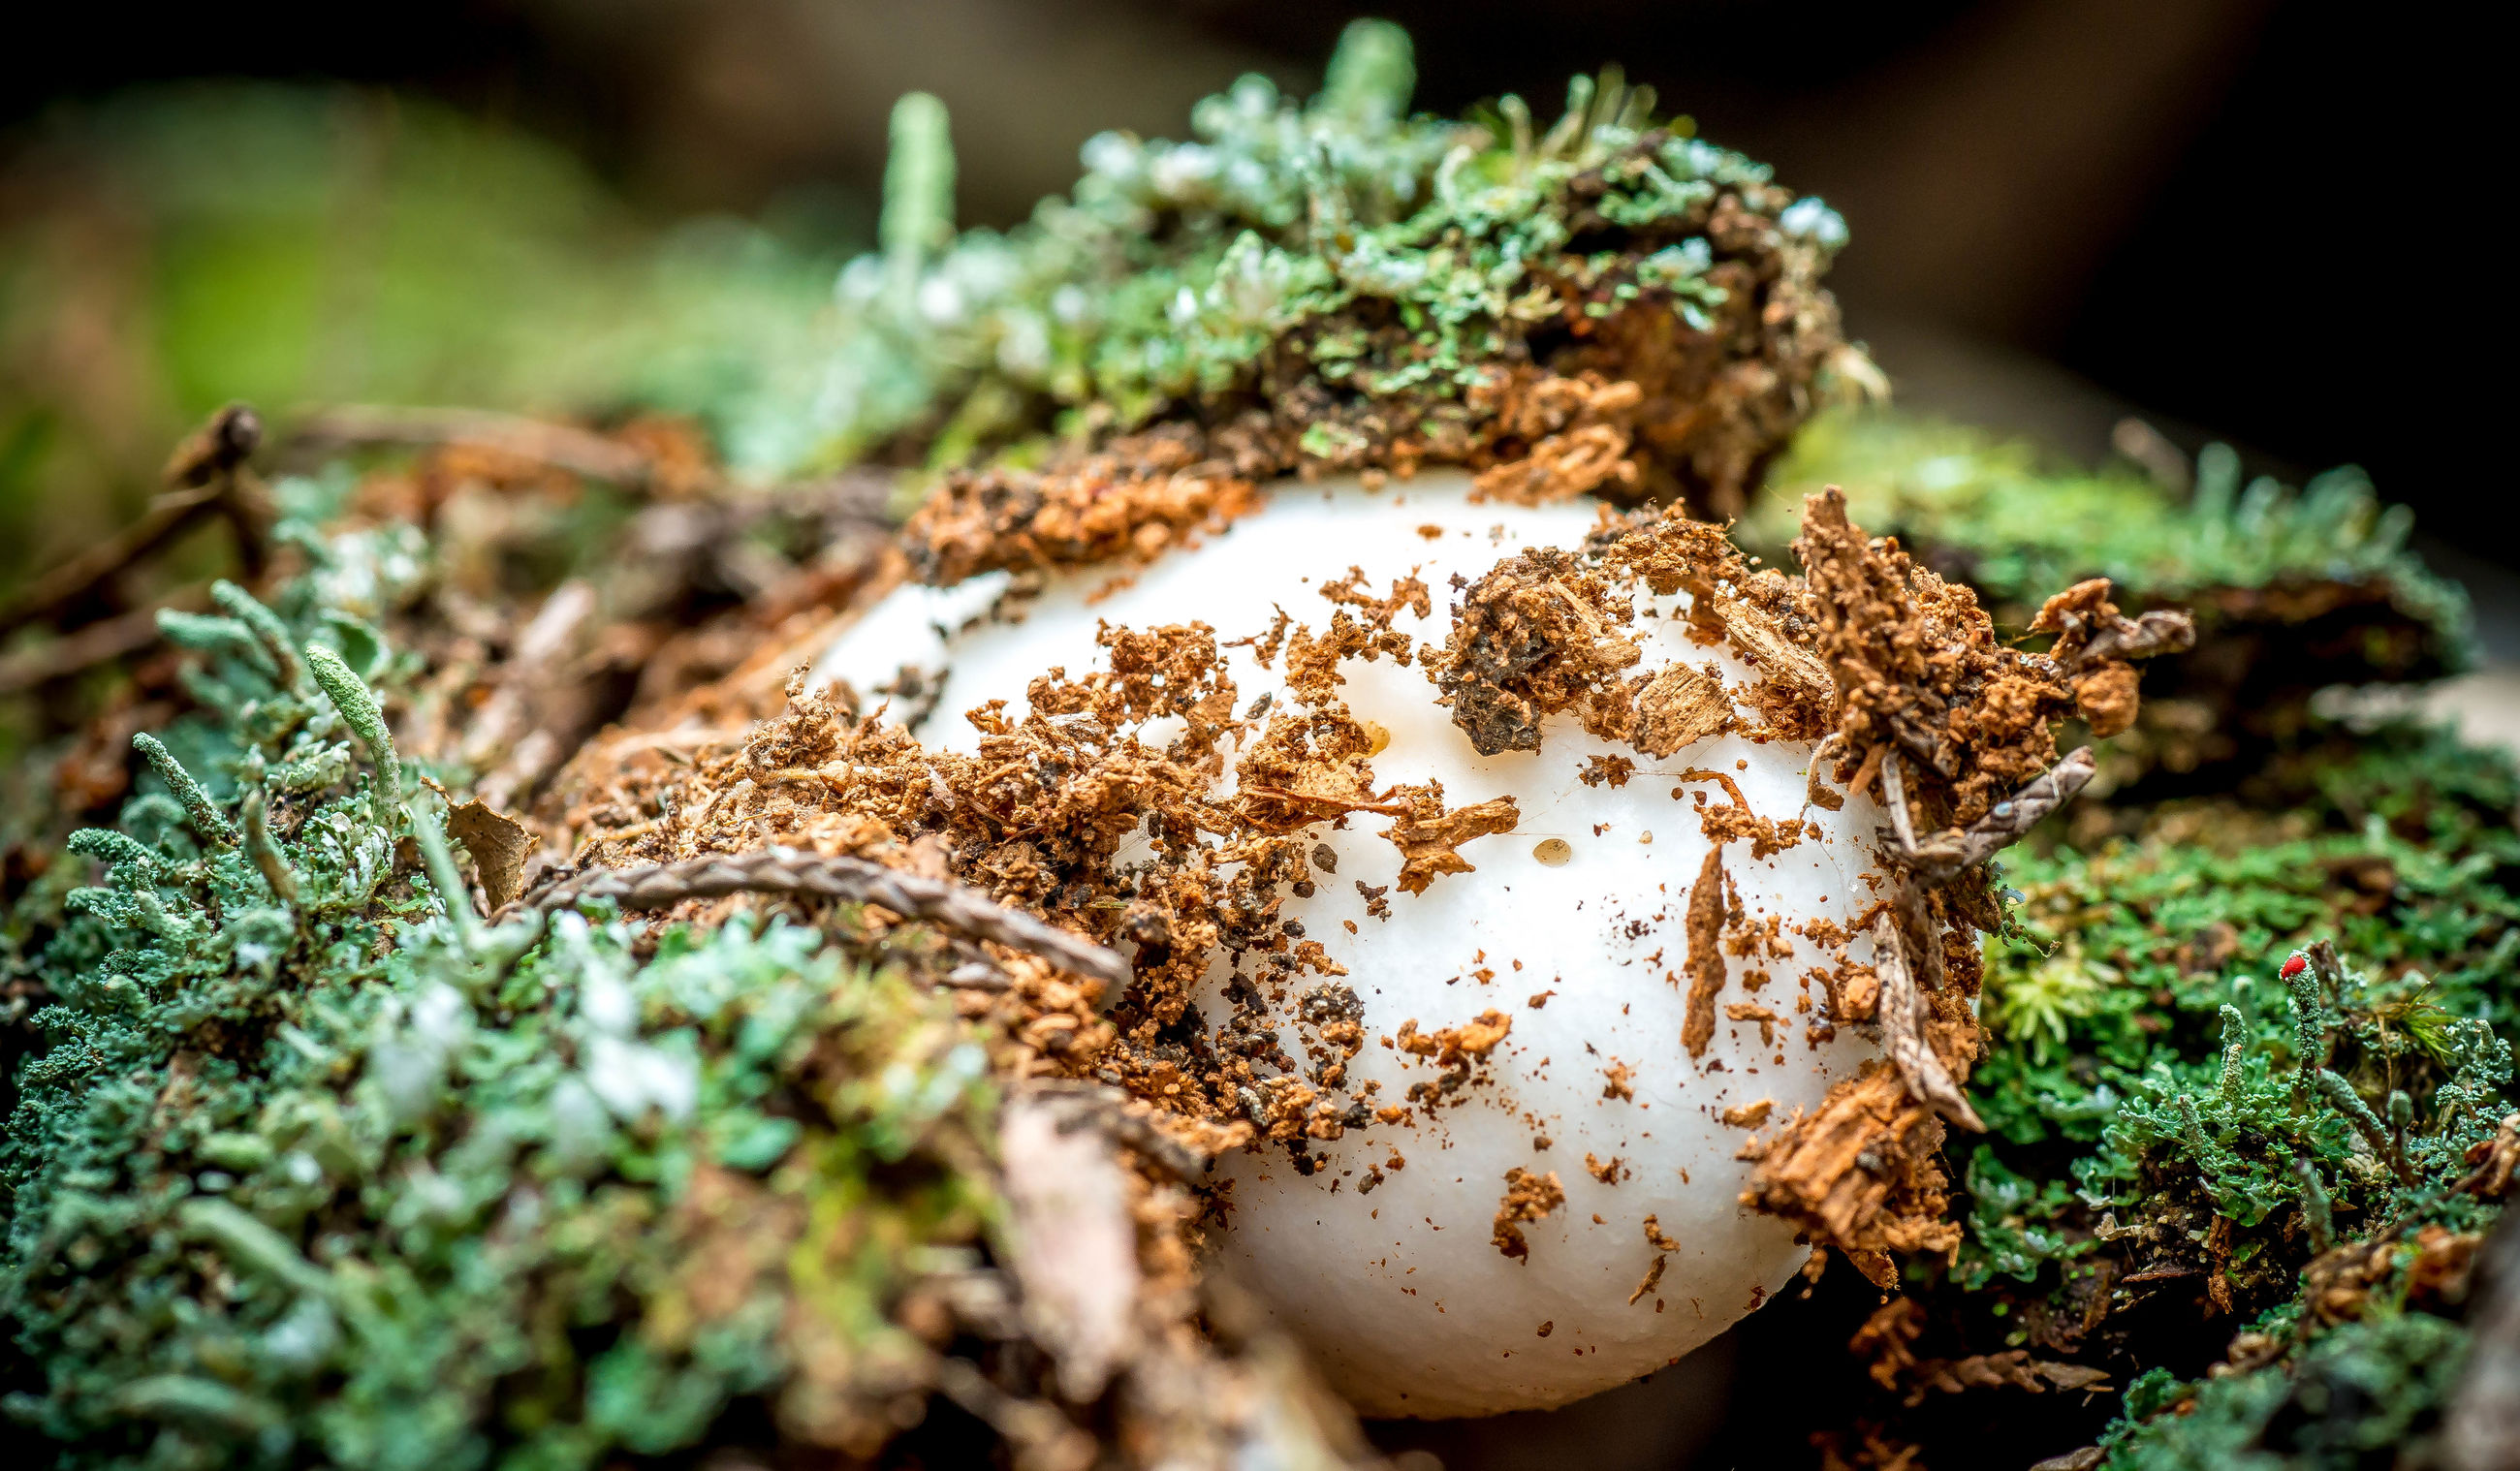 close-up, selective focus, mushroom, growth, fungus, focus on foreground, nature, plant, moss, dry, leaf, field, outdoors, forest, day, no people, toadstool, growing, grass, ground